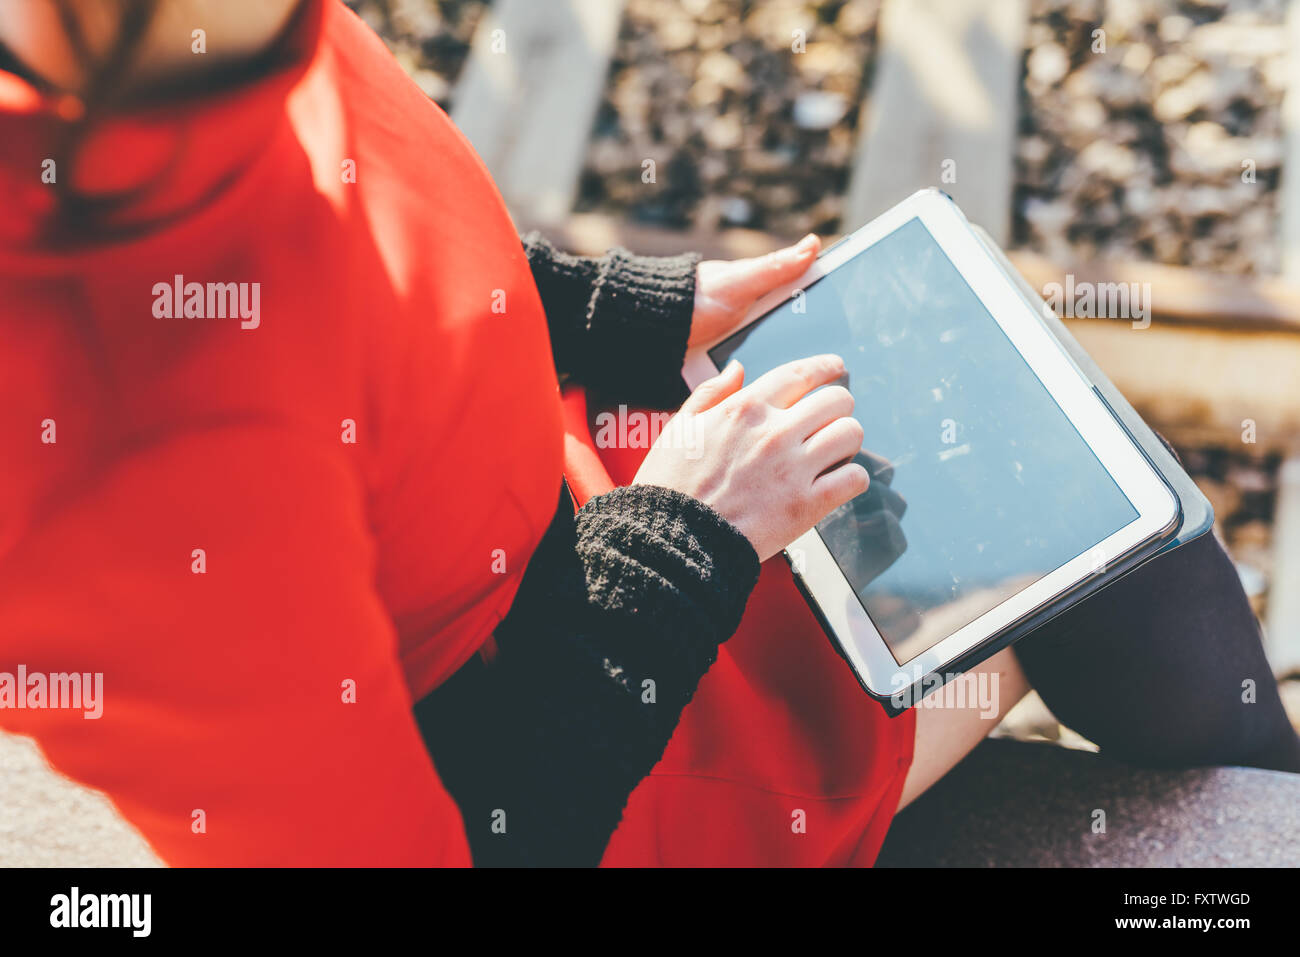 Rear view close up of young beautiful woman holding a tablet, tapping the screen - technology, social network, communication - Stock Image